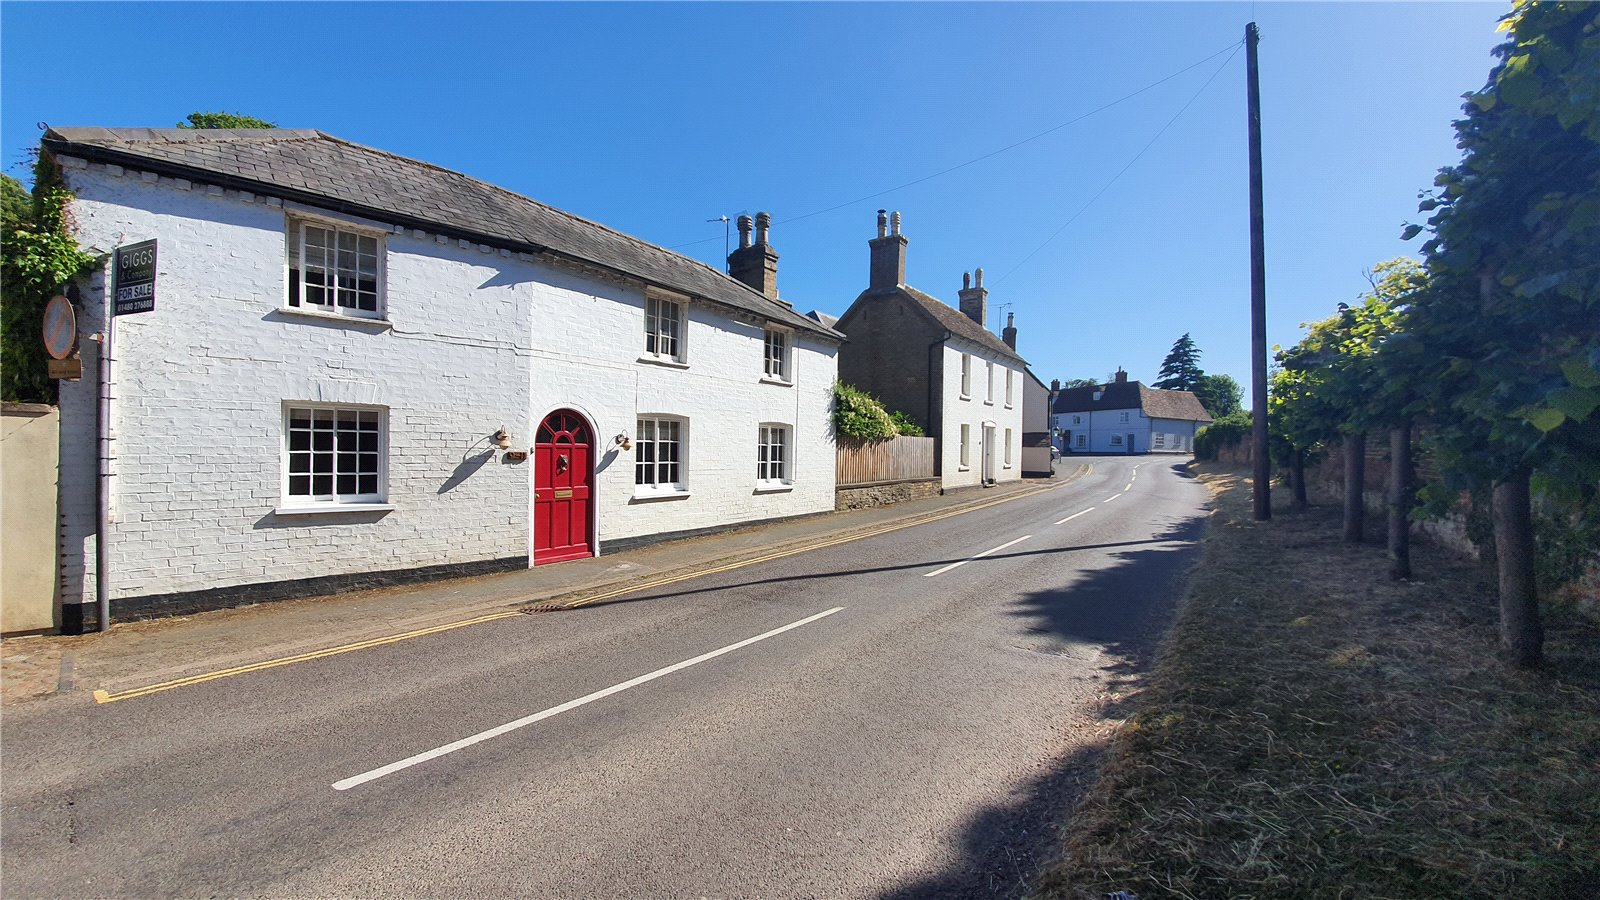 4 bed for sale in The Town, Great Staughton - Property Image 1